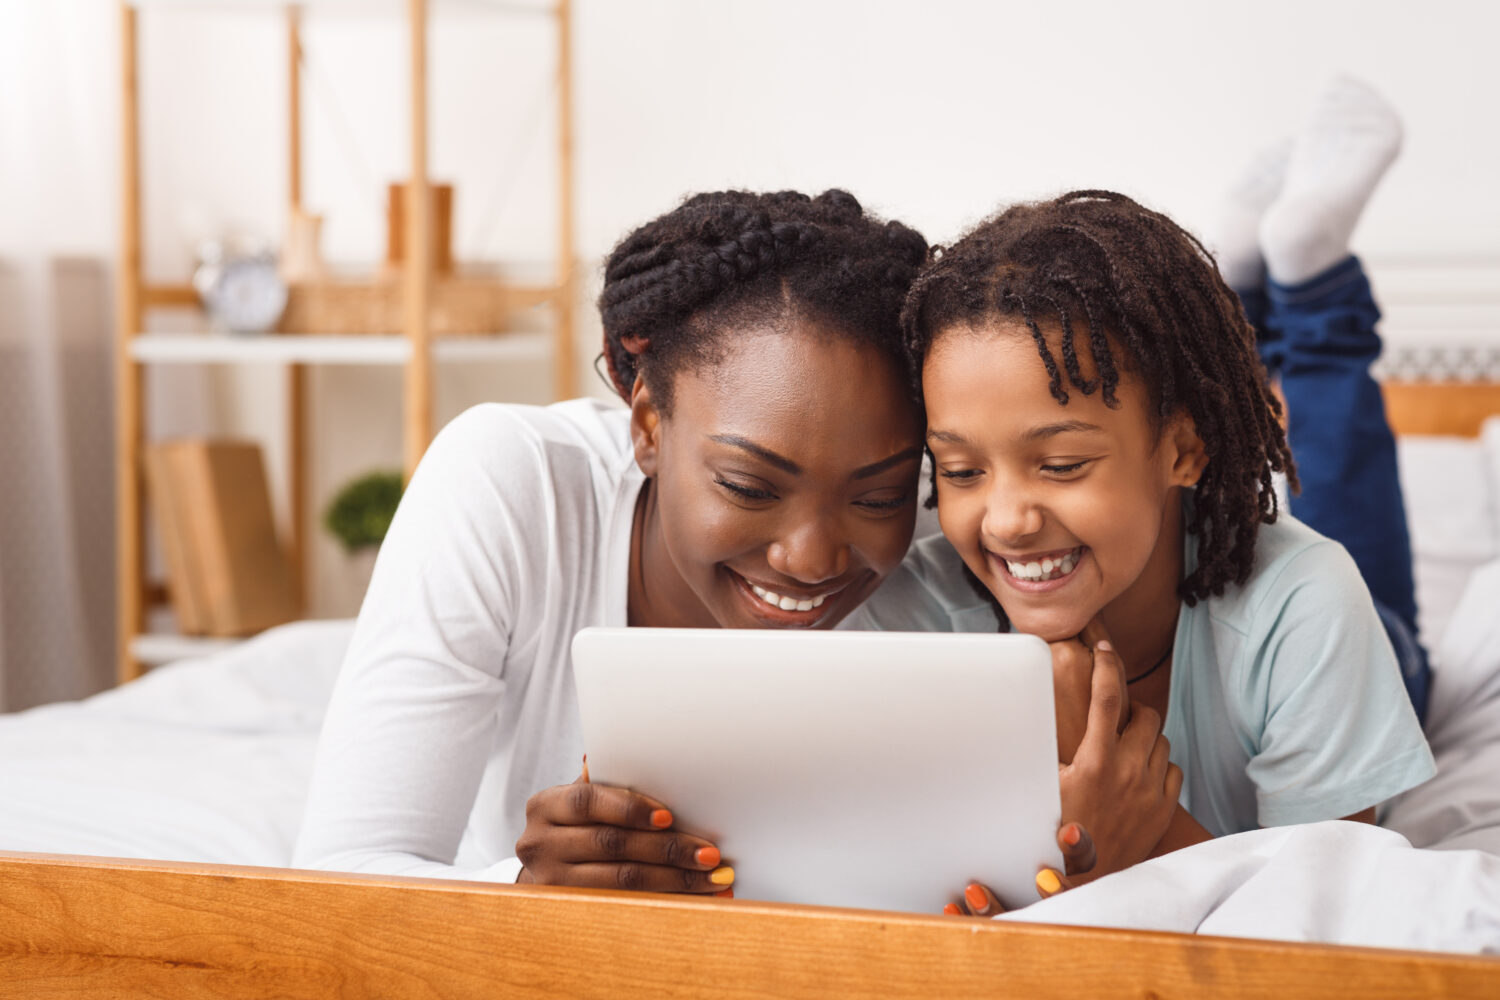 black mother and daughter laying in bed and smiling at a white tablet